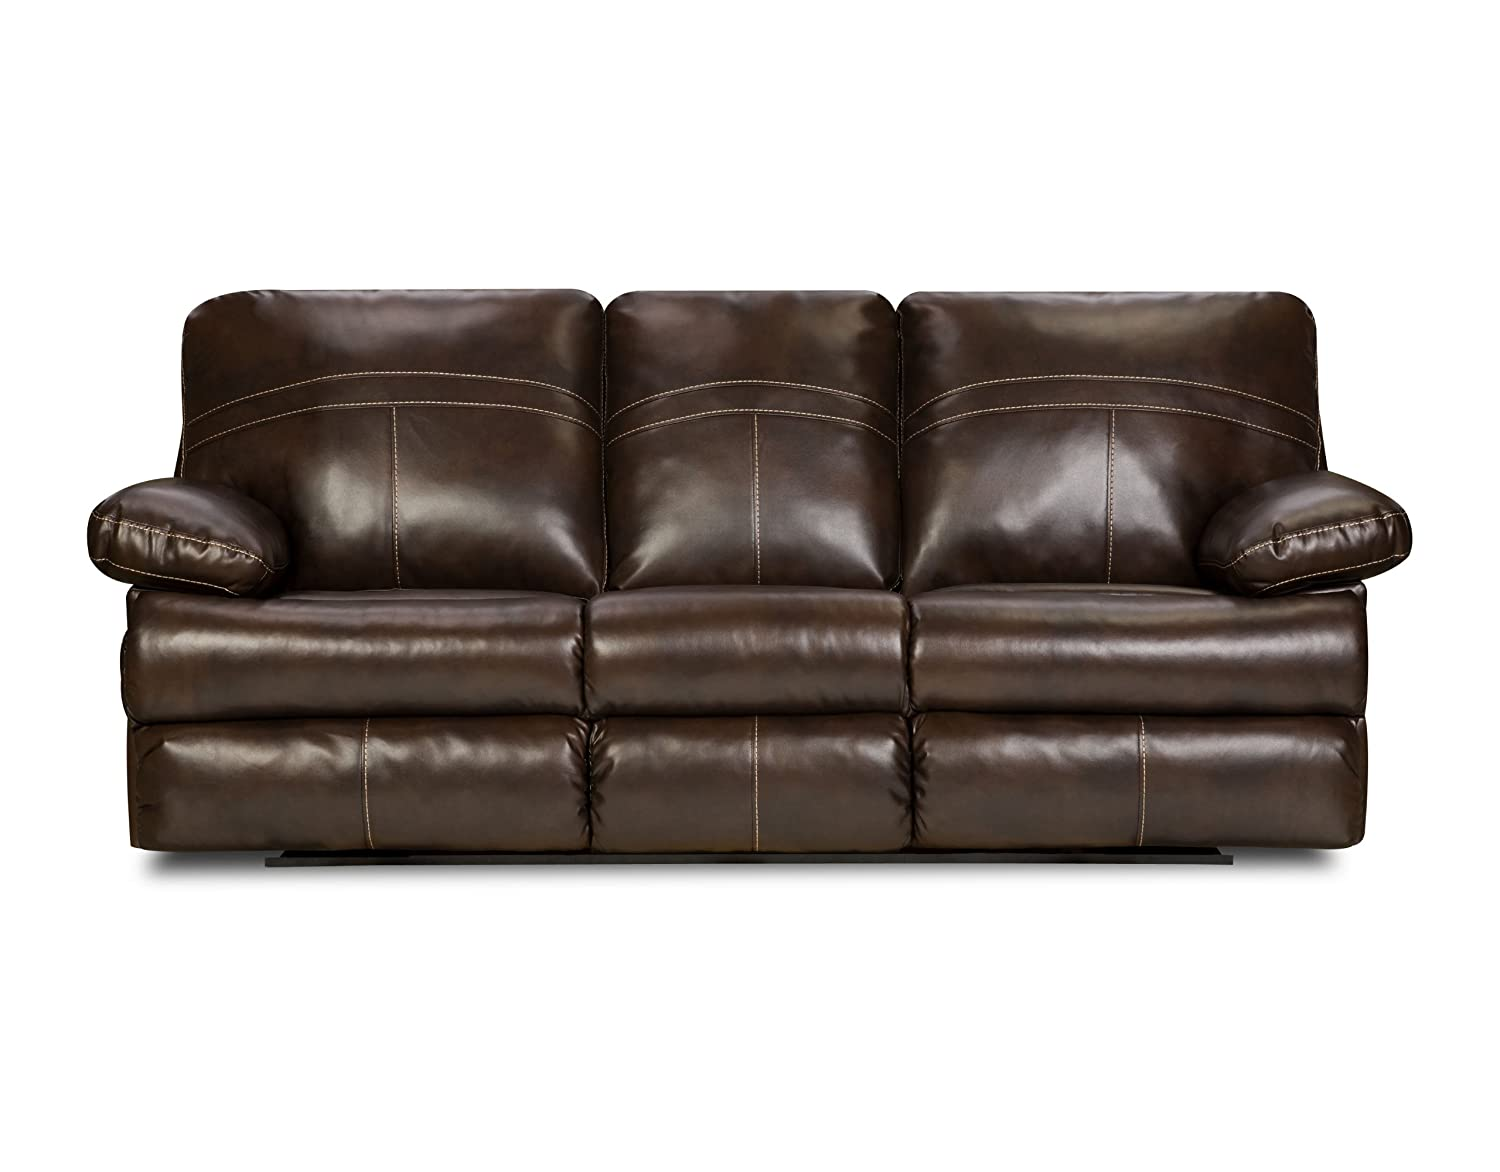 Simmons Upholstery 50981-53 Miracle Saddle Bonded Leather Double Motion Sofa